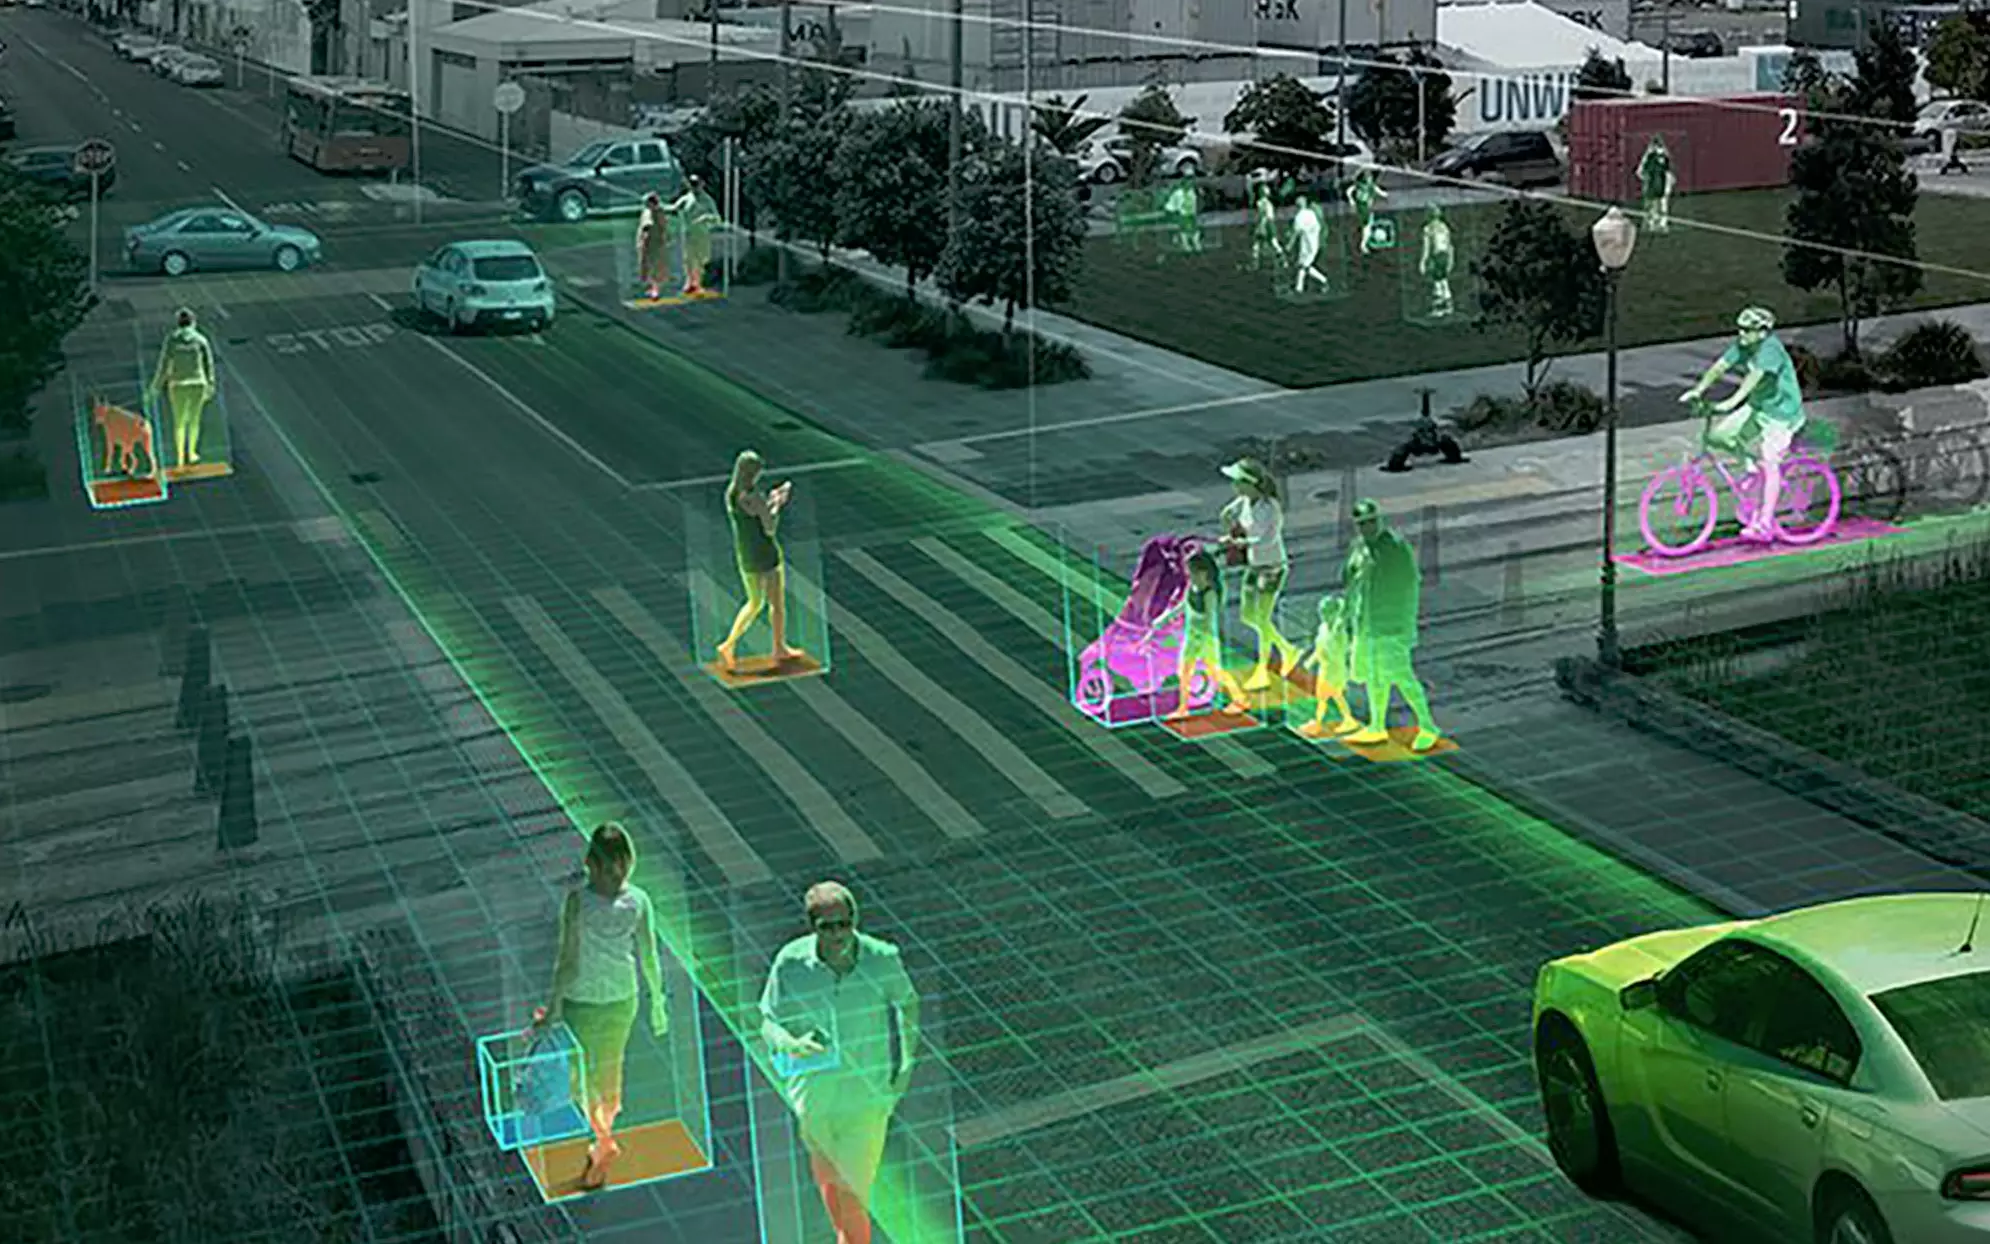 Future Trends – Terrifying Smart Cities